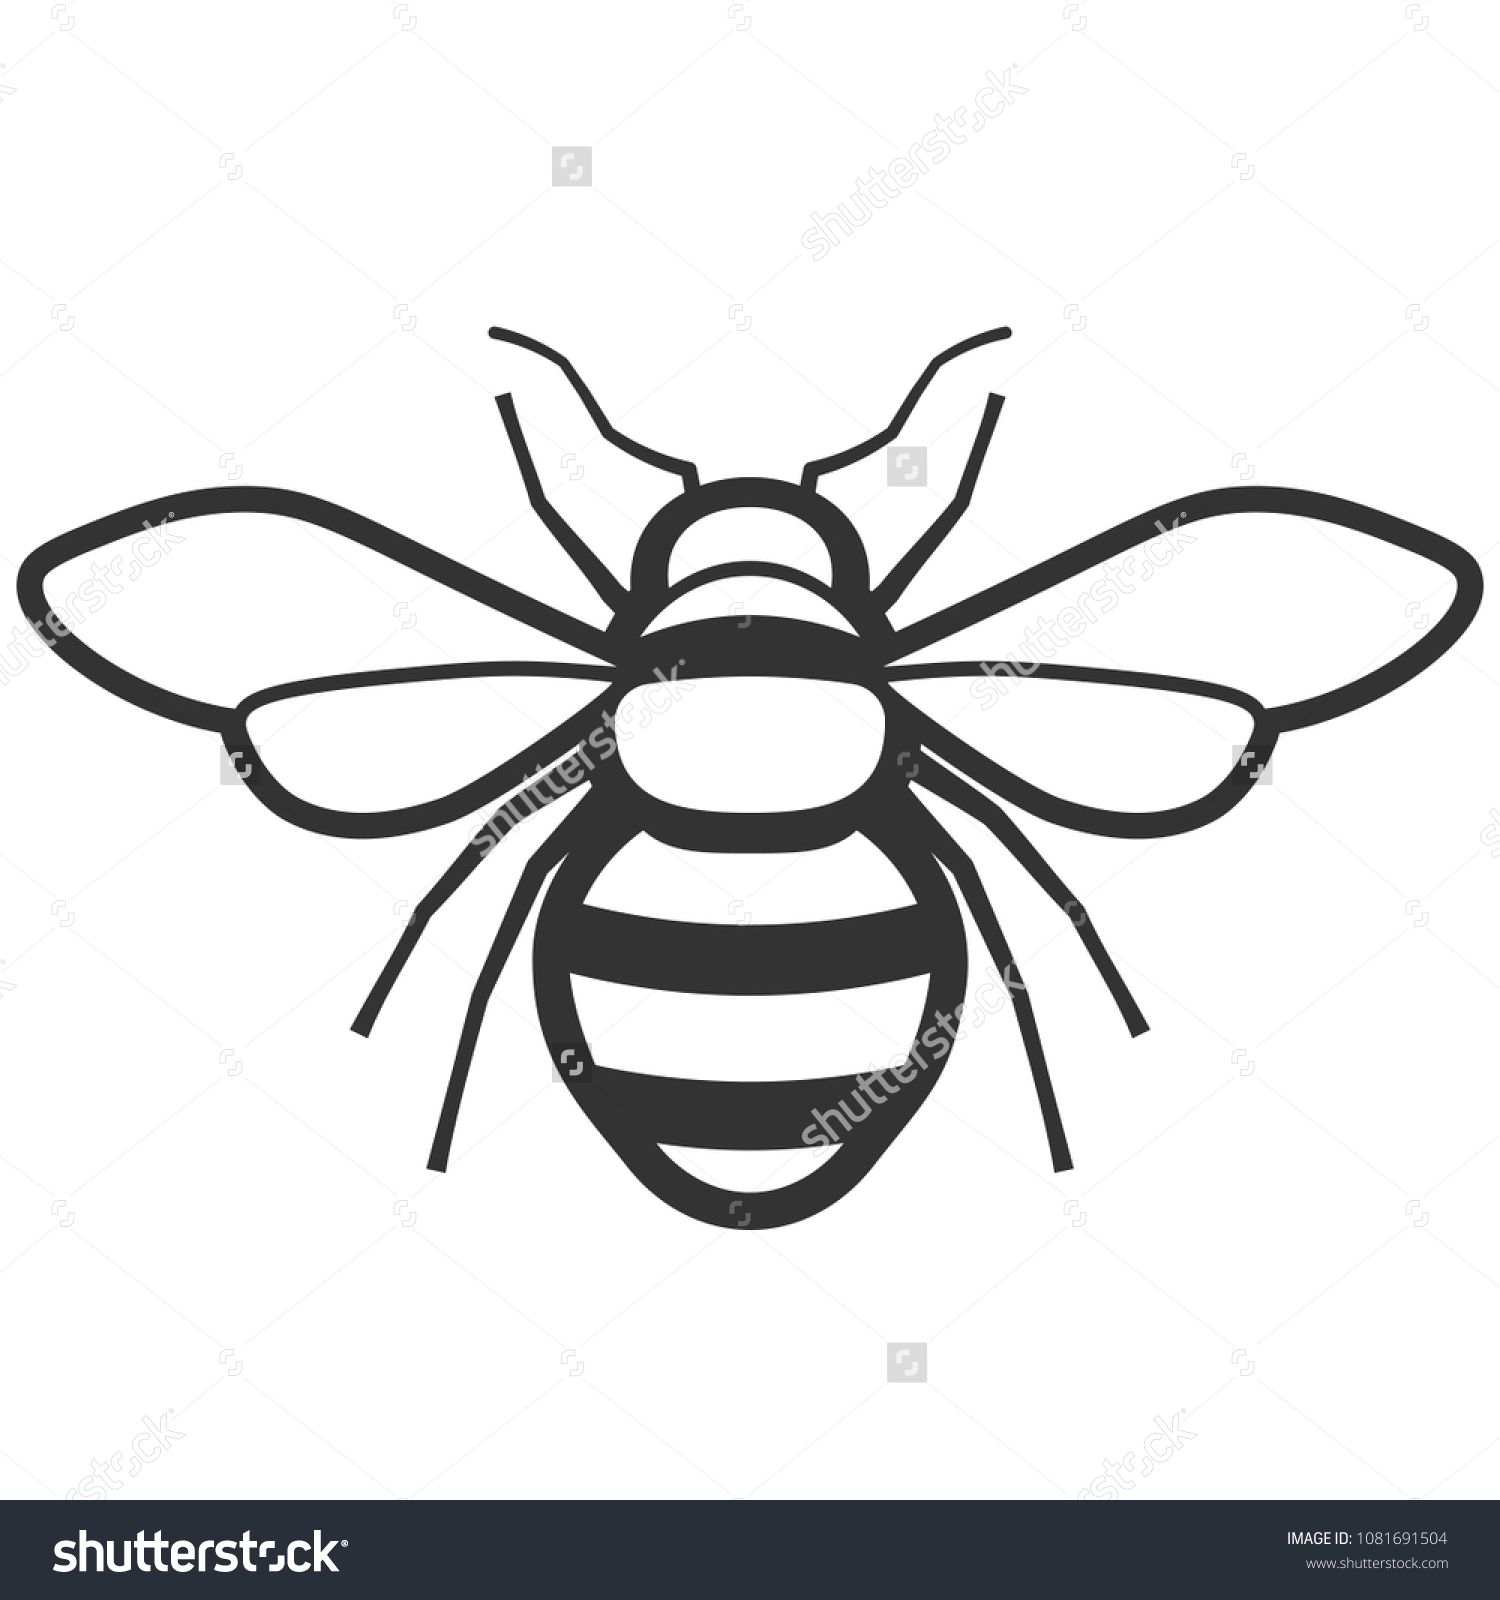 Honey bee black and white icon. Pest control clipart ...